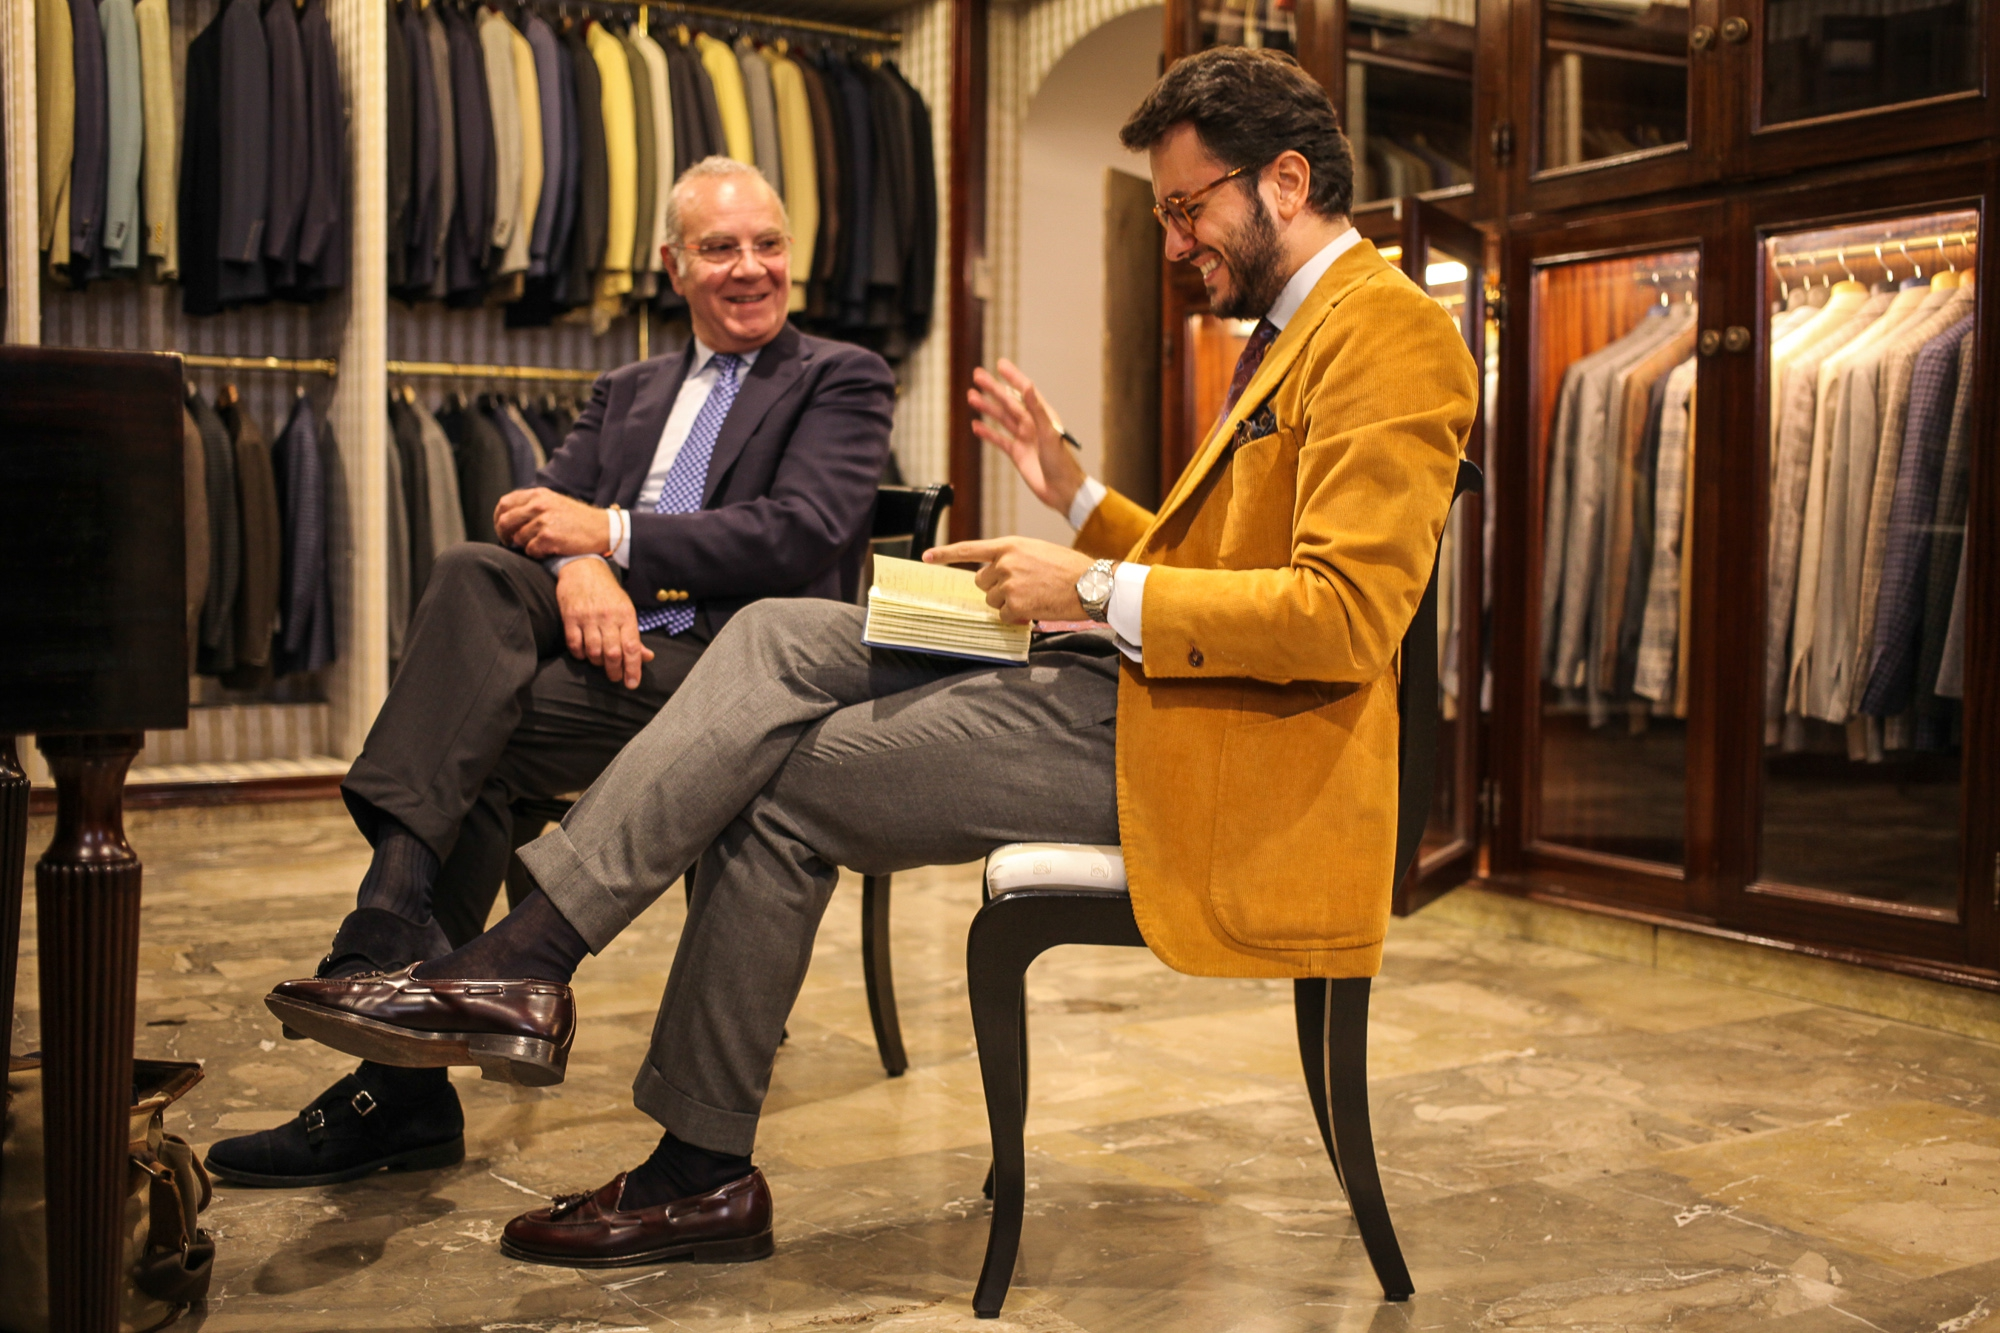 The Roman Chapter - Caleffi Interview with shirtmaker Rodolfo Caleffi in Rome